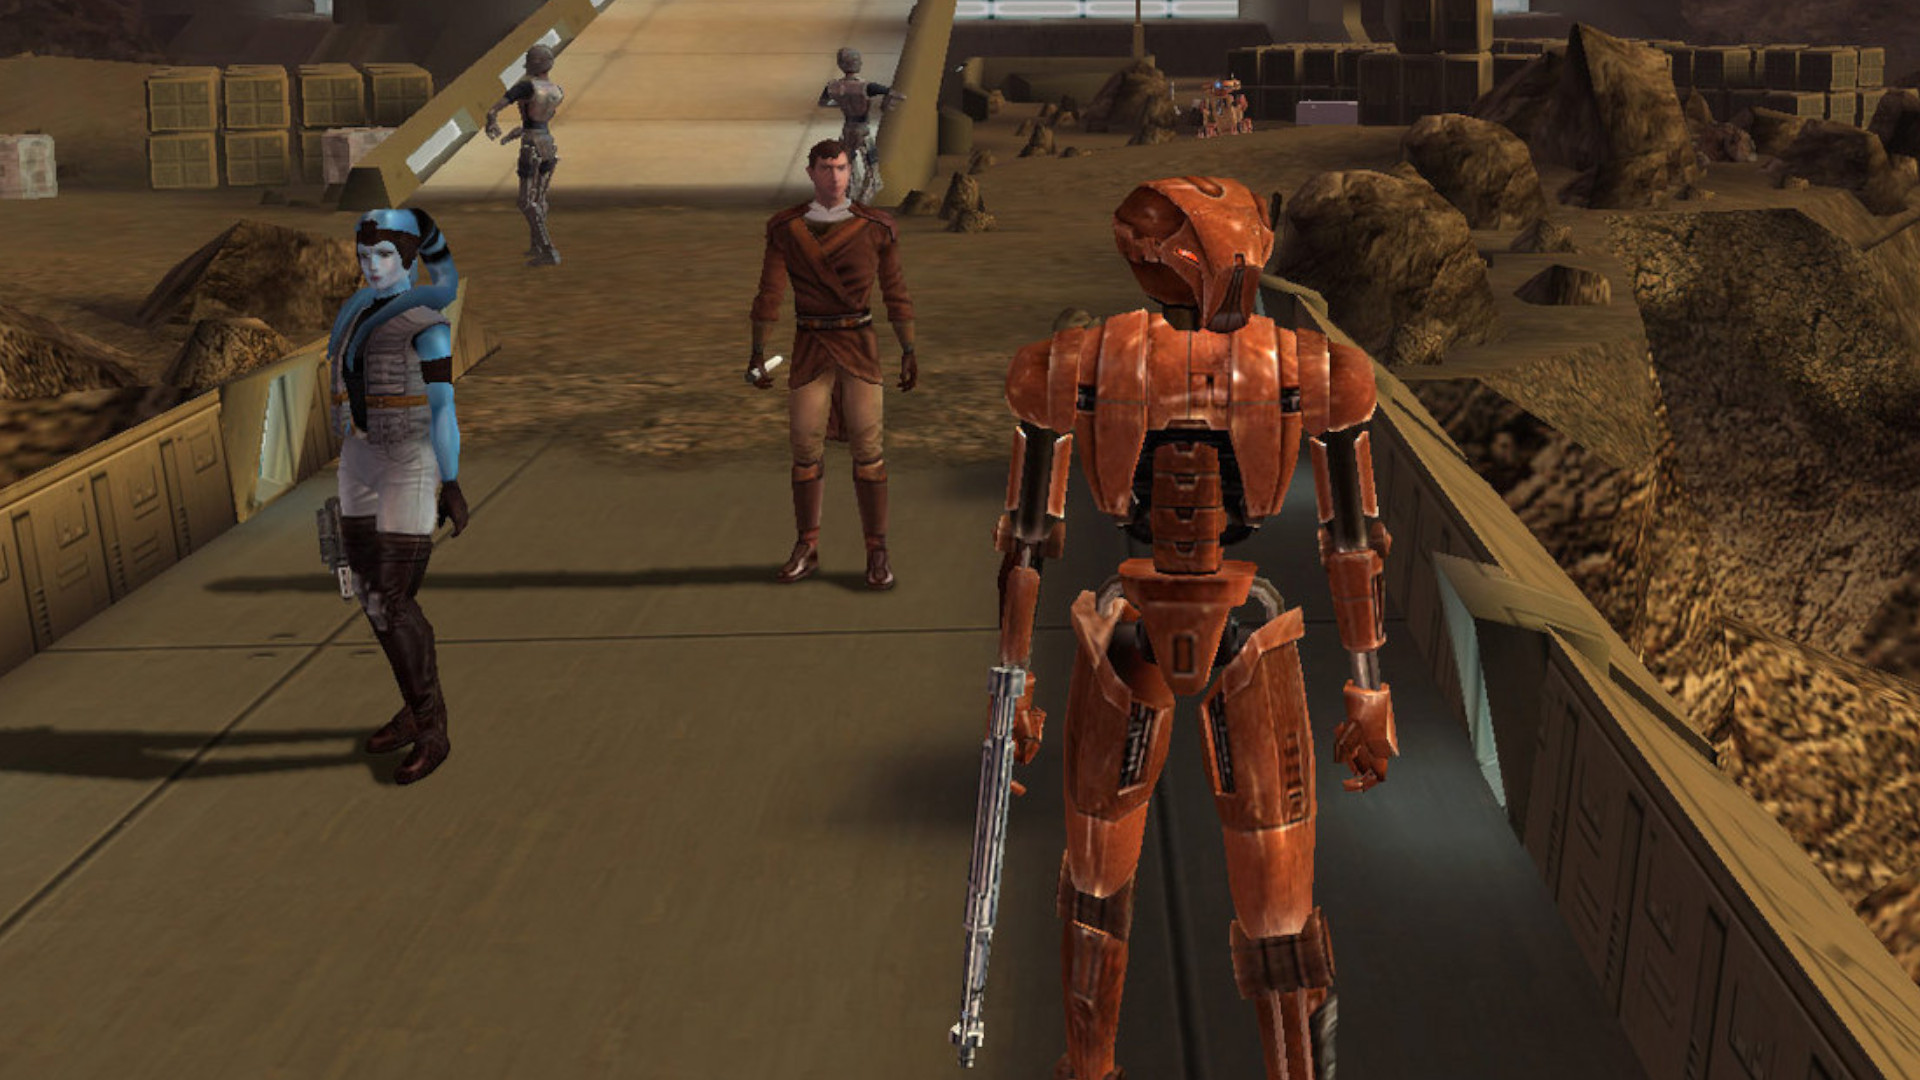 The best Star Wars game is reportedly getting a remake